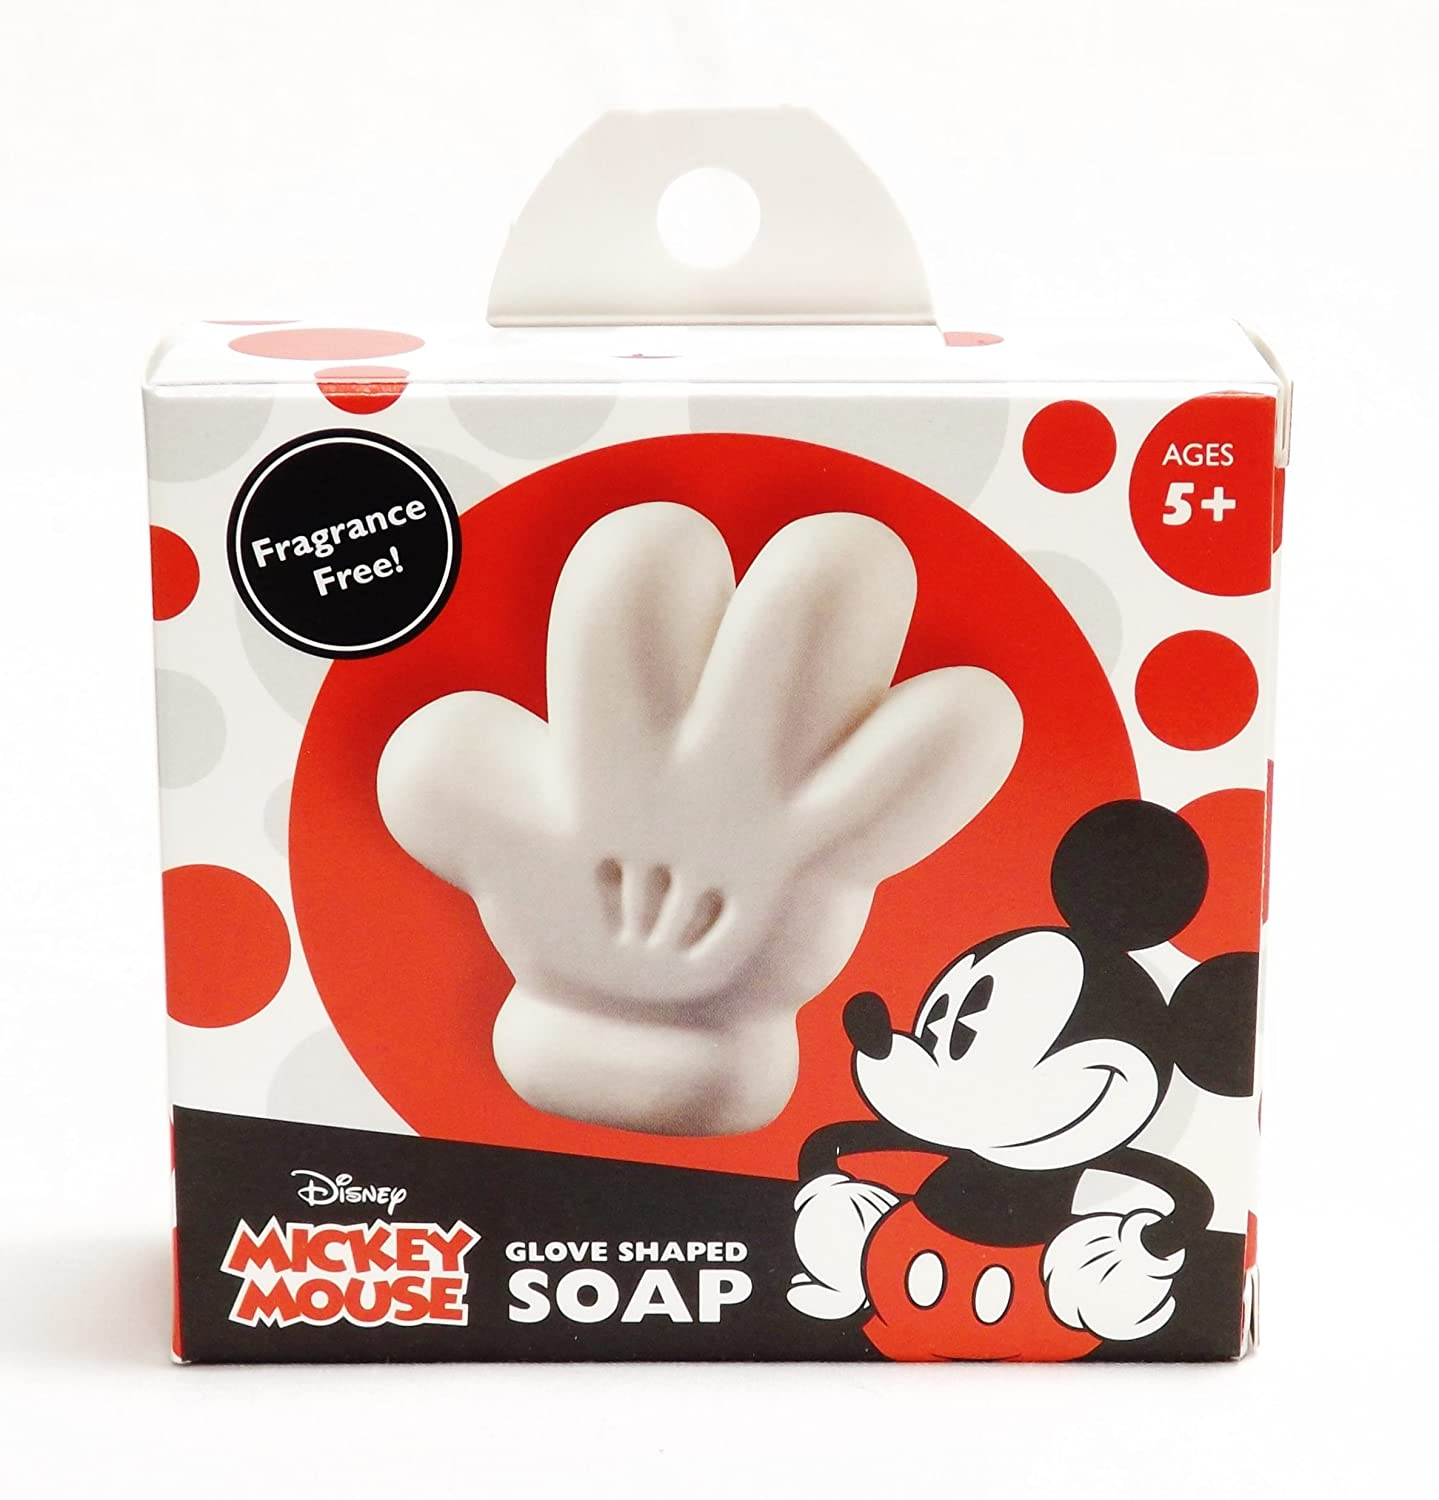 Mickey Mouse Glove Shaped Soap Fish Extender Gift Idea